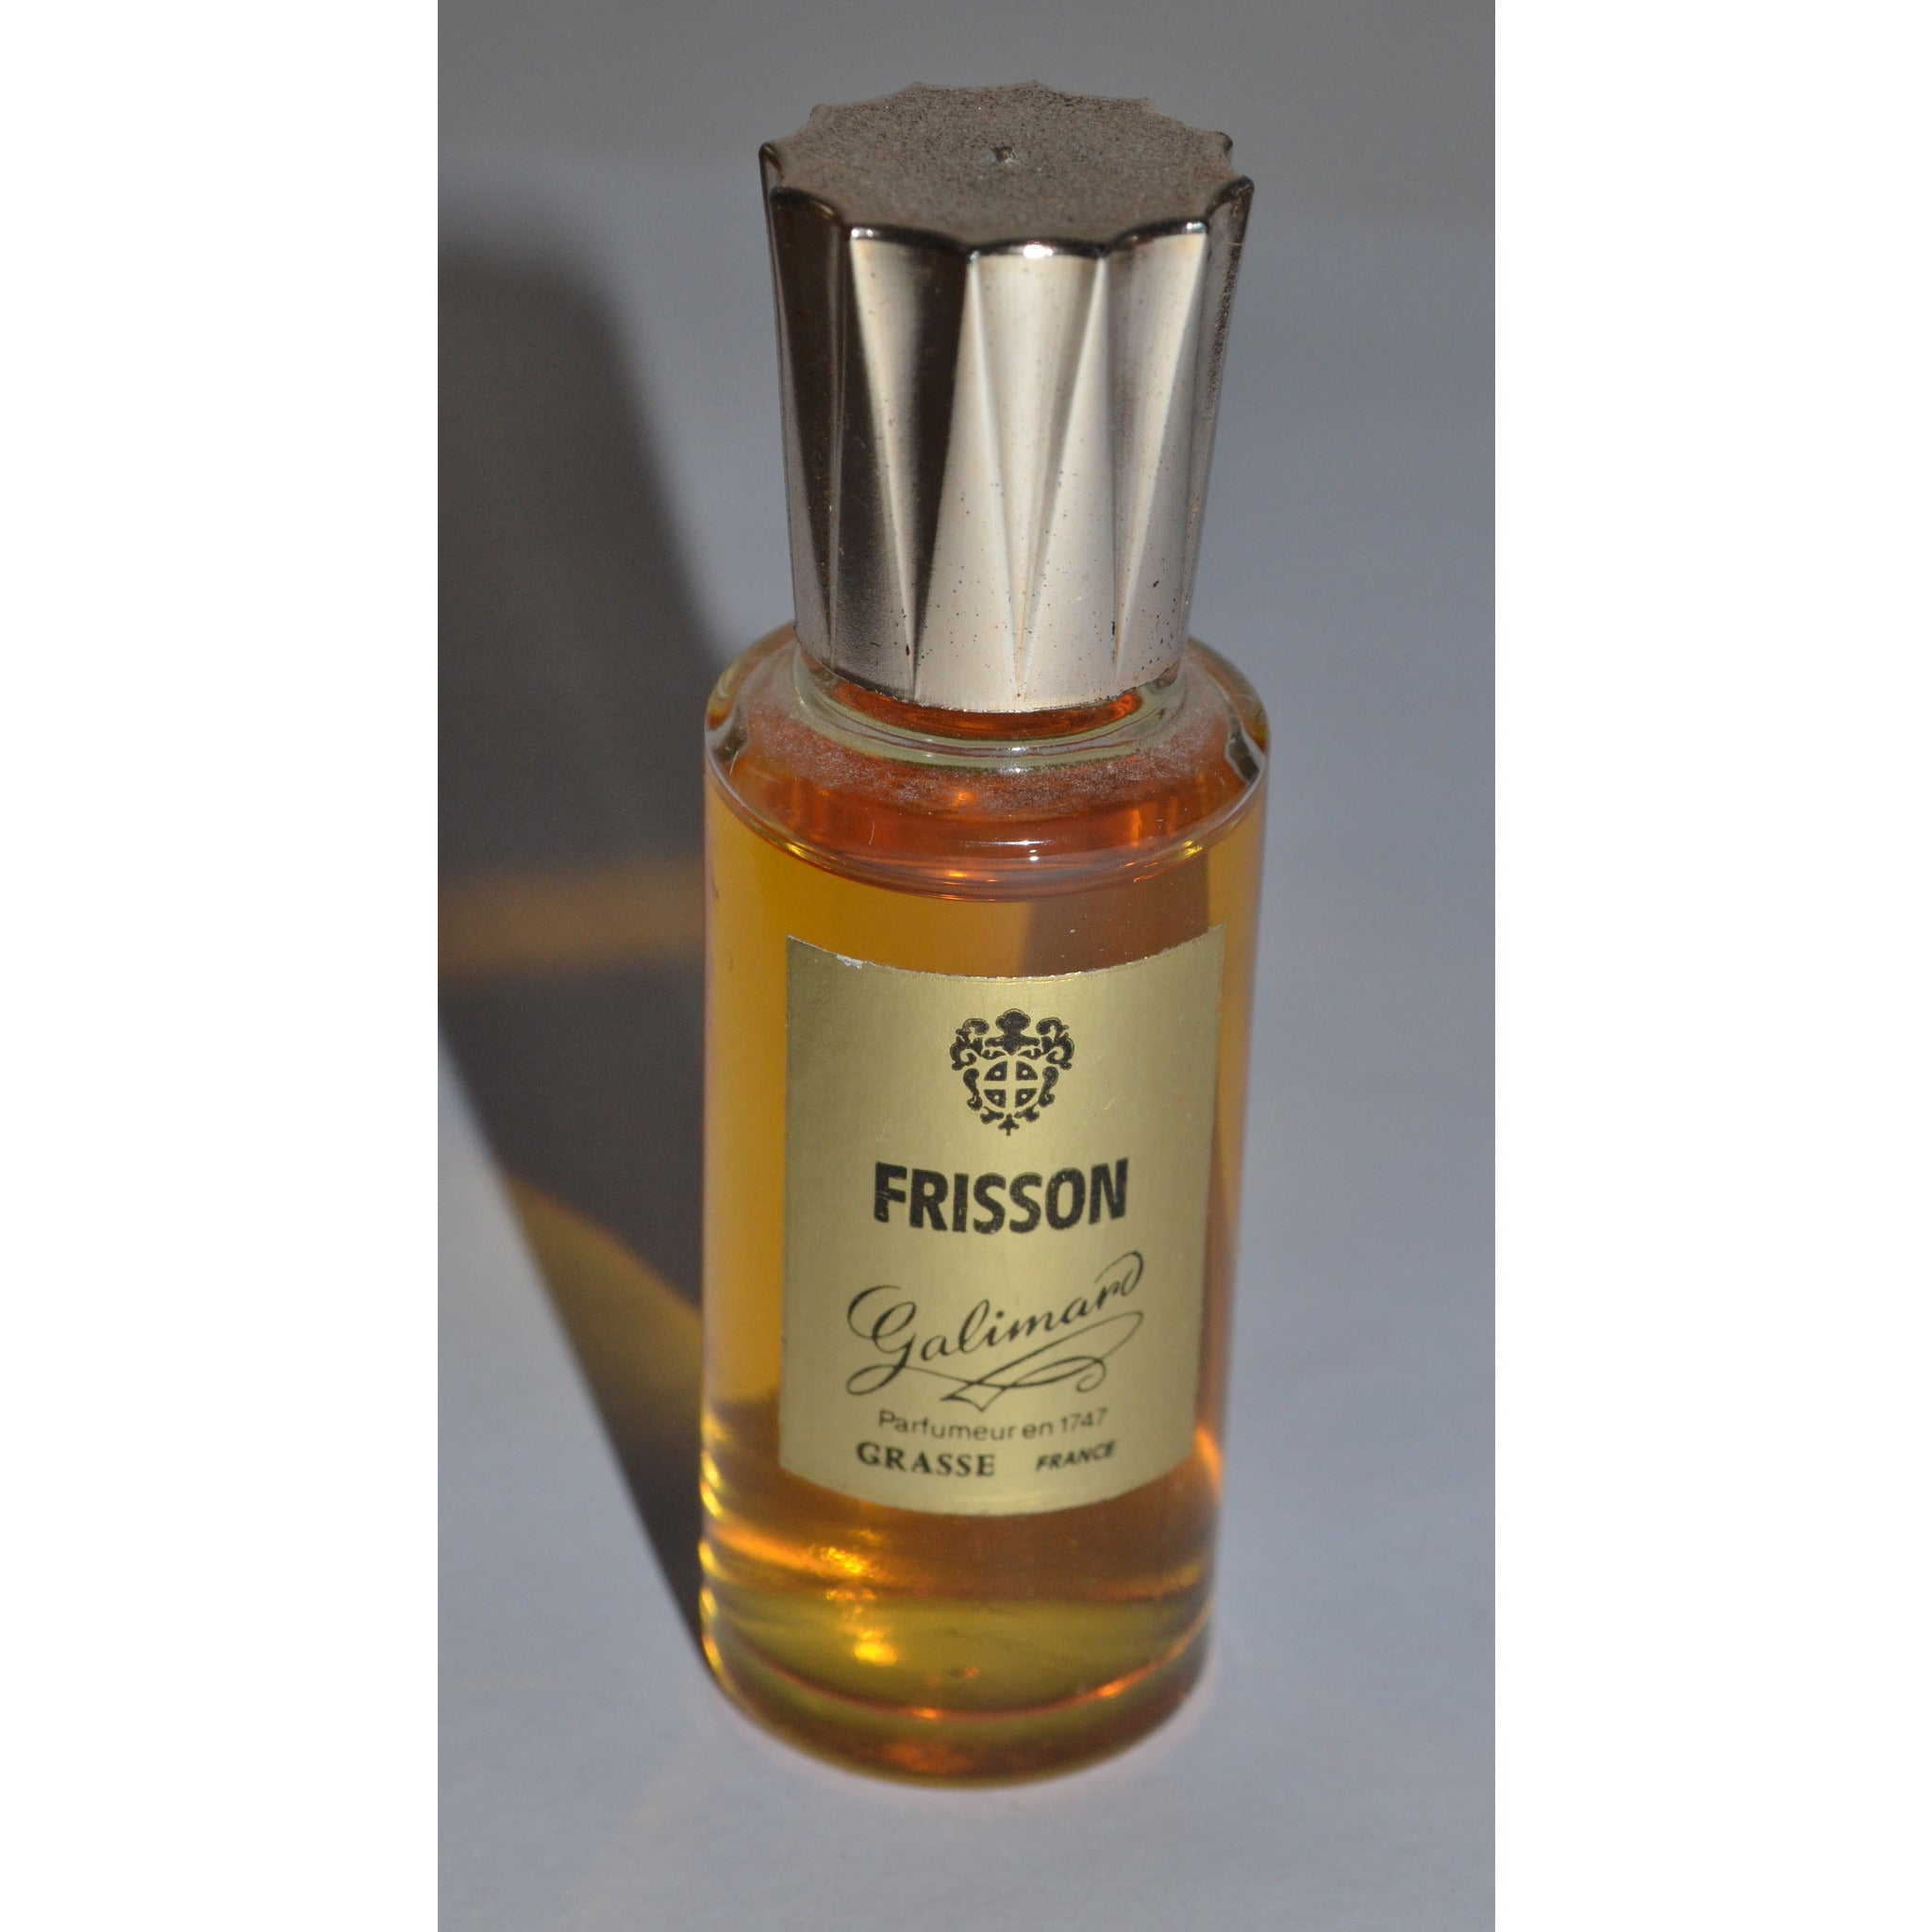 Vintage Frisson Perfume By Galimard